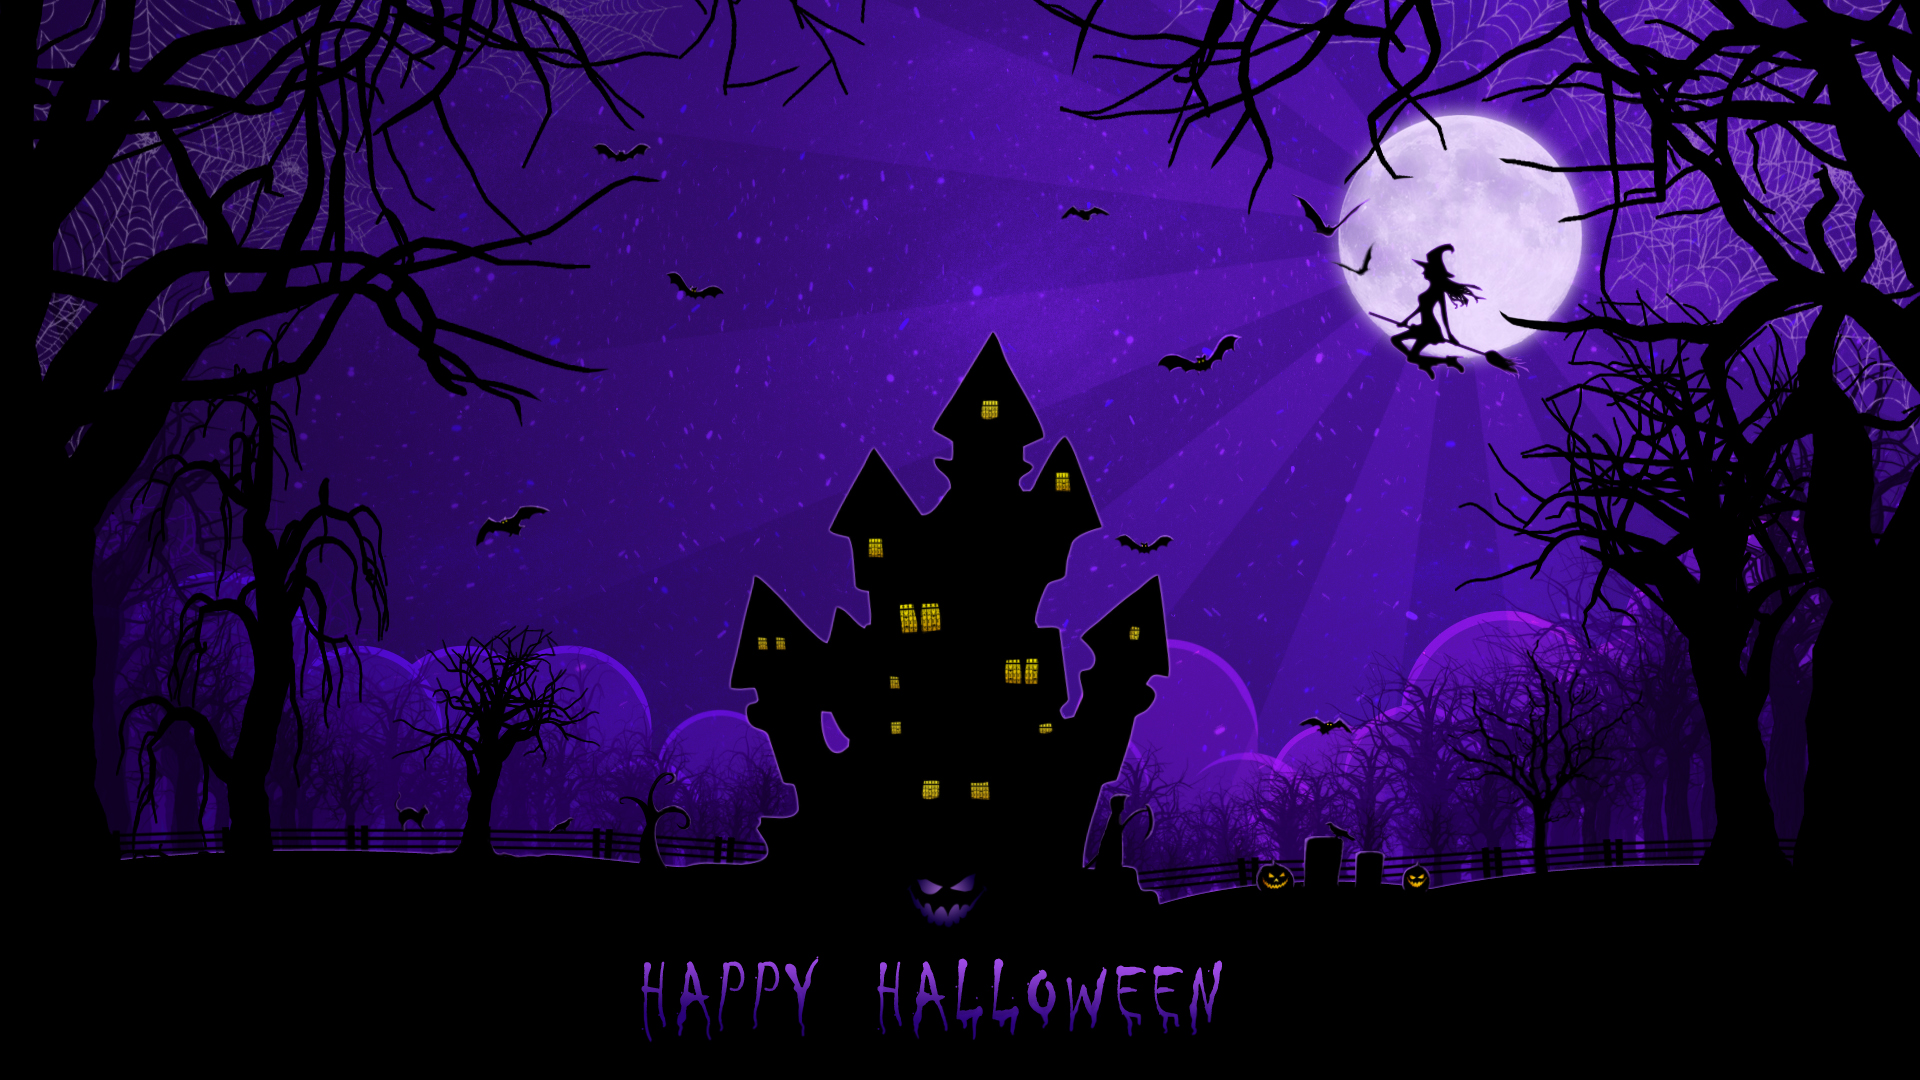 HD Scary Halloween Wallpapers Free | PixelsTalk Net